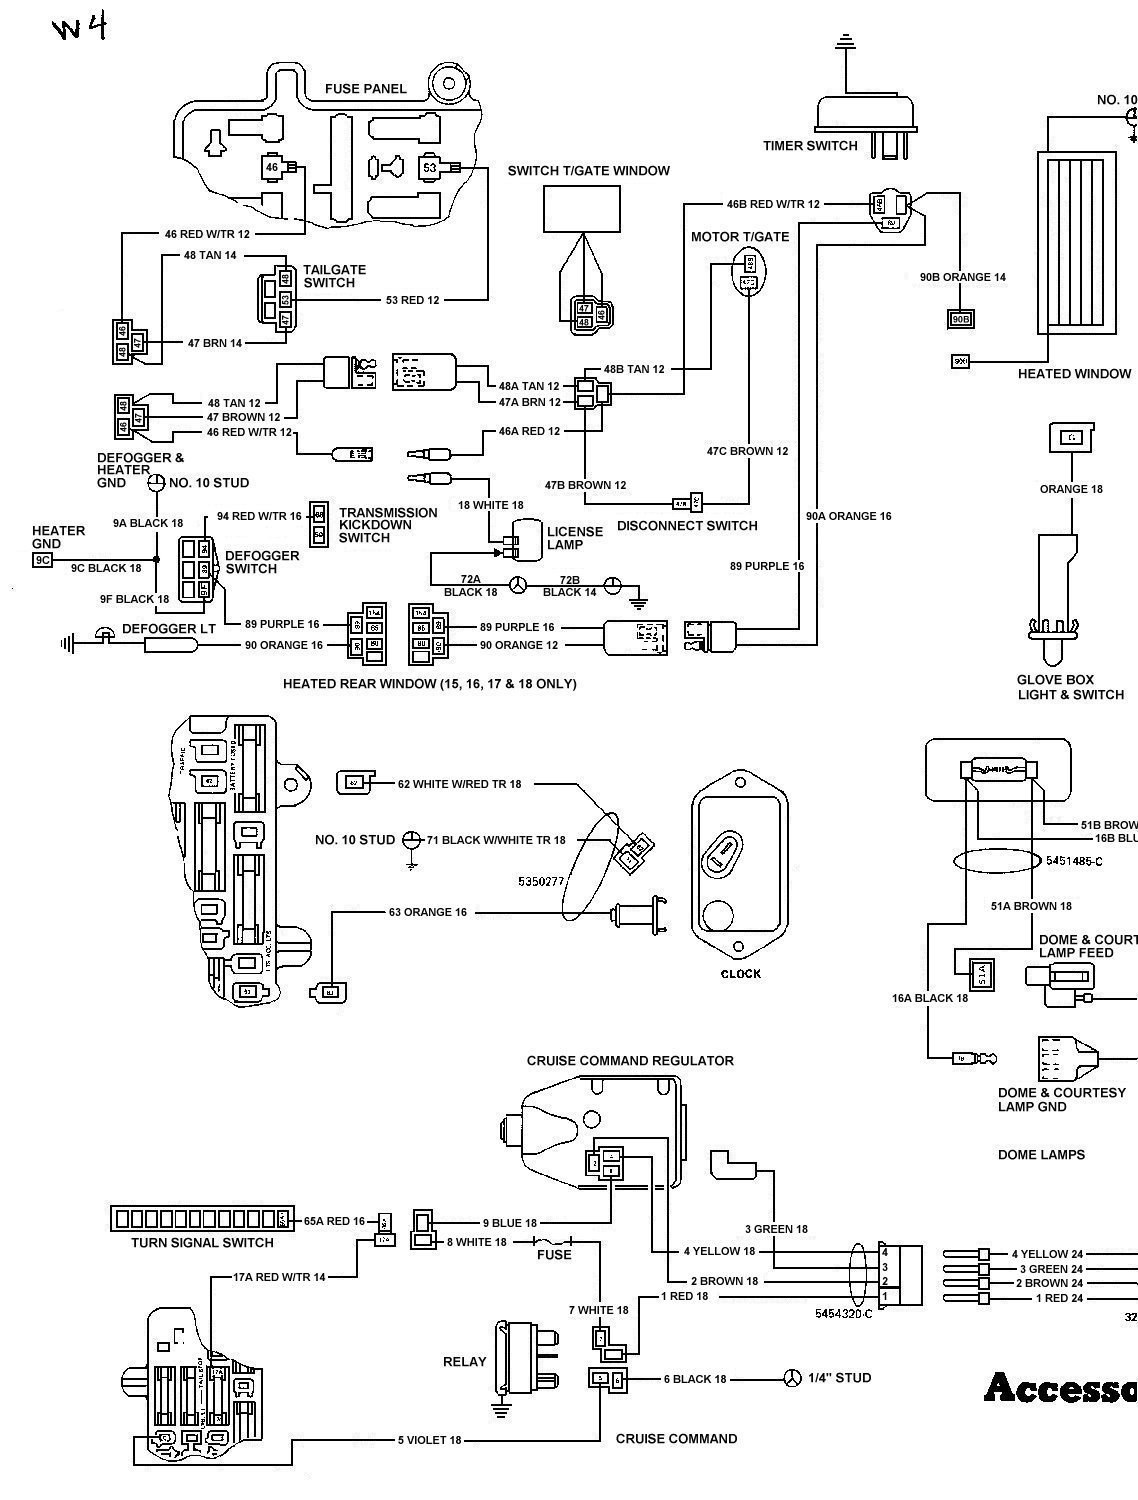 1966 Jeep Cj5 Wiring Diagram | Wiring Liry M Jeep Wire Harness Turn Signal on